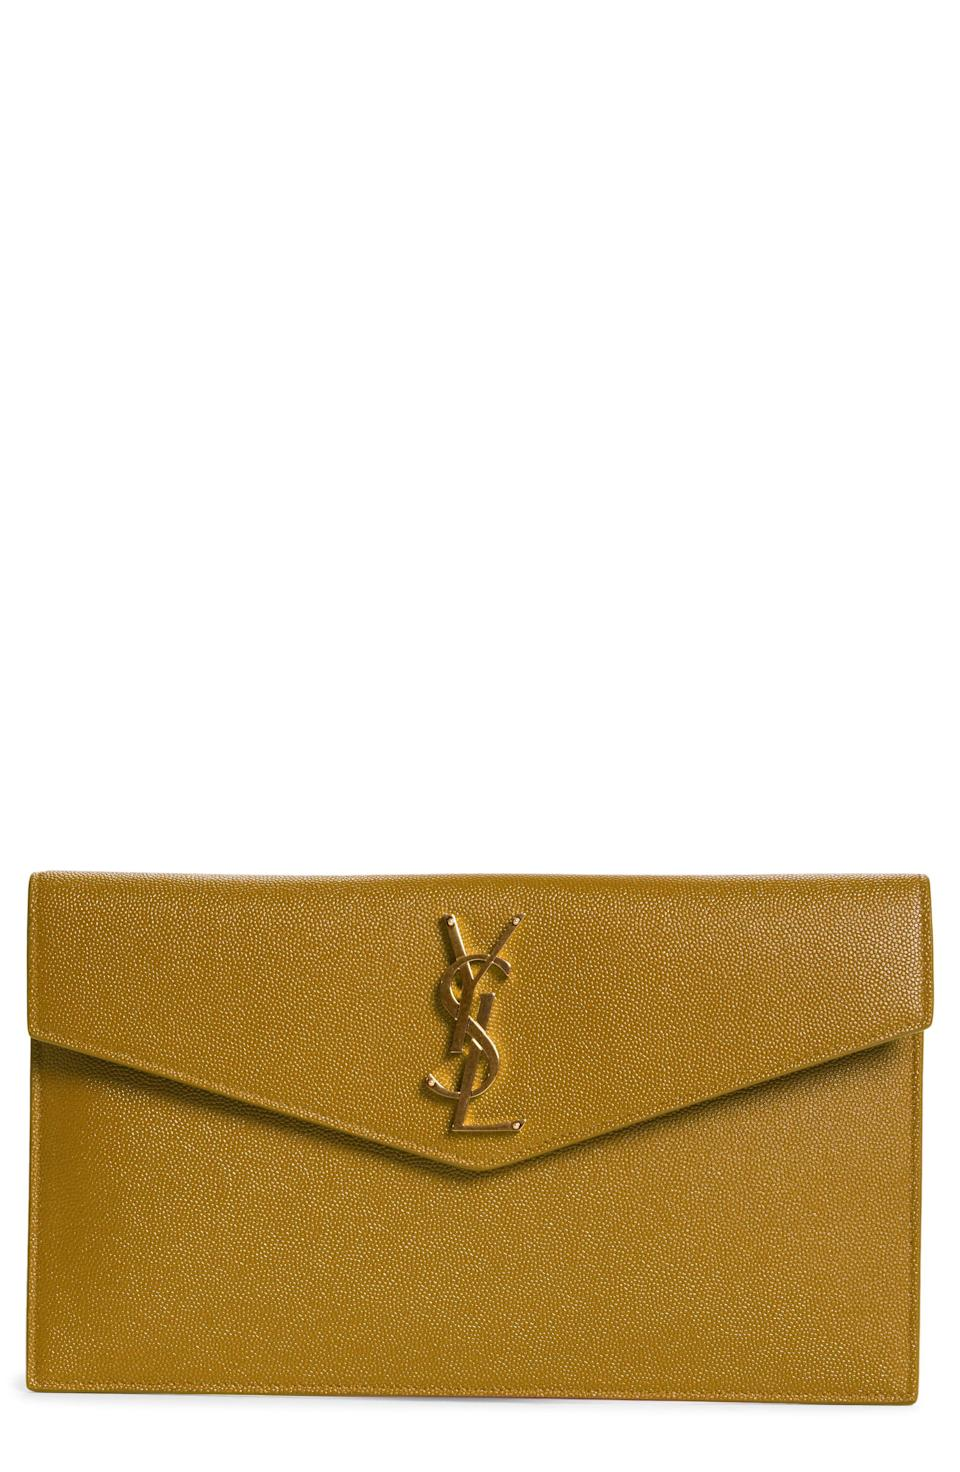 """<p><strong>Saint Laurent</strong></p><p>nordstrom.com</p><p><strong>$595.00</strong></p><p><a href=""""https://go.redirectingat.com?id=74968X1596630&url=https%3A%2F%2Fwww.nordstrom.com%2Fs%2Fsaint-laurent-uptown-calfskin-leather-envelope-clutch%2F5444506&sref=https%3A%2F%2Fwww.townandcountrymag.com%2Fstyle%2Ffashion-trends%2Fg37157428%2Fbest-evening-bags%2F"""" rel=""""nofollow noopener"""" target=""""_blank"""" data-ylk=""""slk:Shop Now"""" class=""""link rapid-noclick-resp"""">Shop Now</a></p><p>When in doubt, grab a YSL envelope clutch and tuck in your phone and credit cards and you'll be on your way.</p>"""